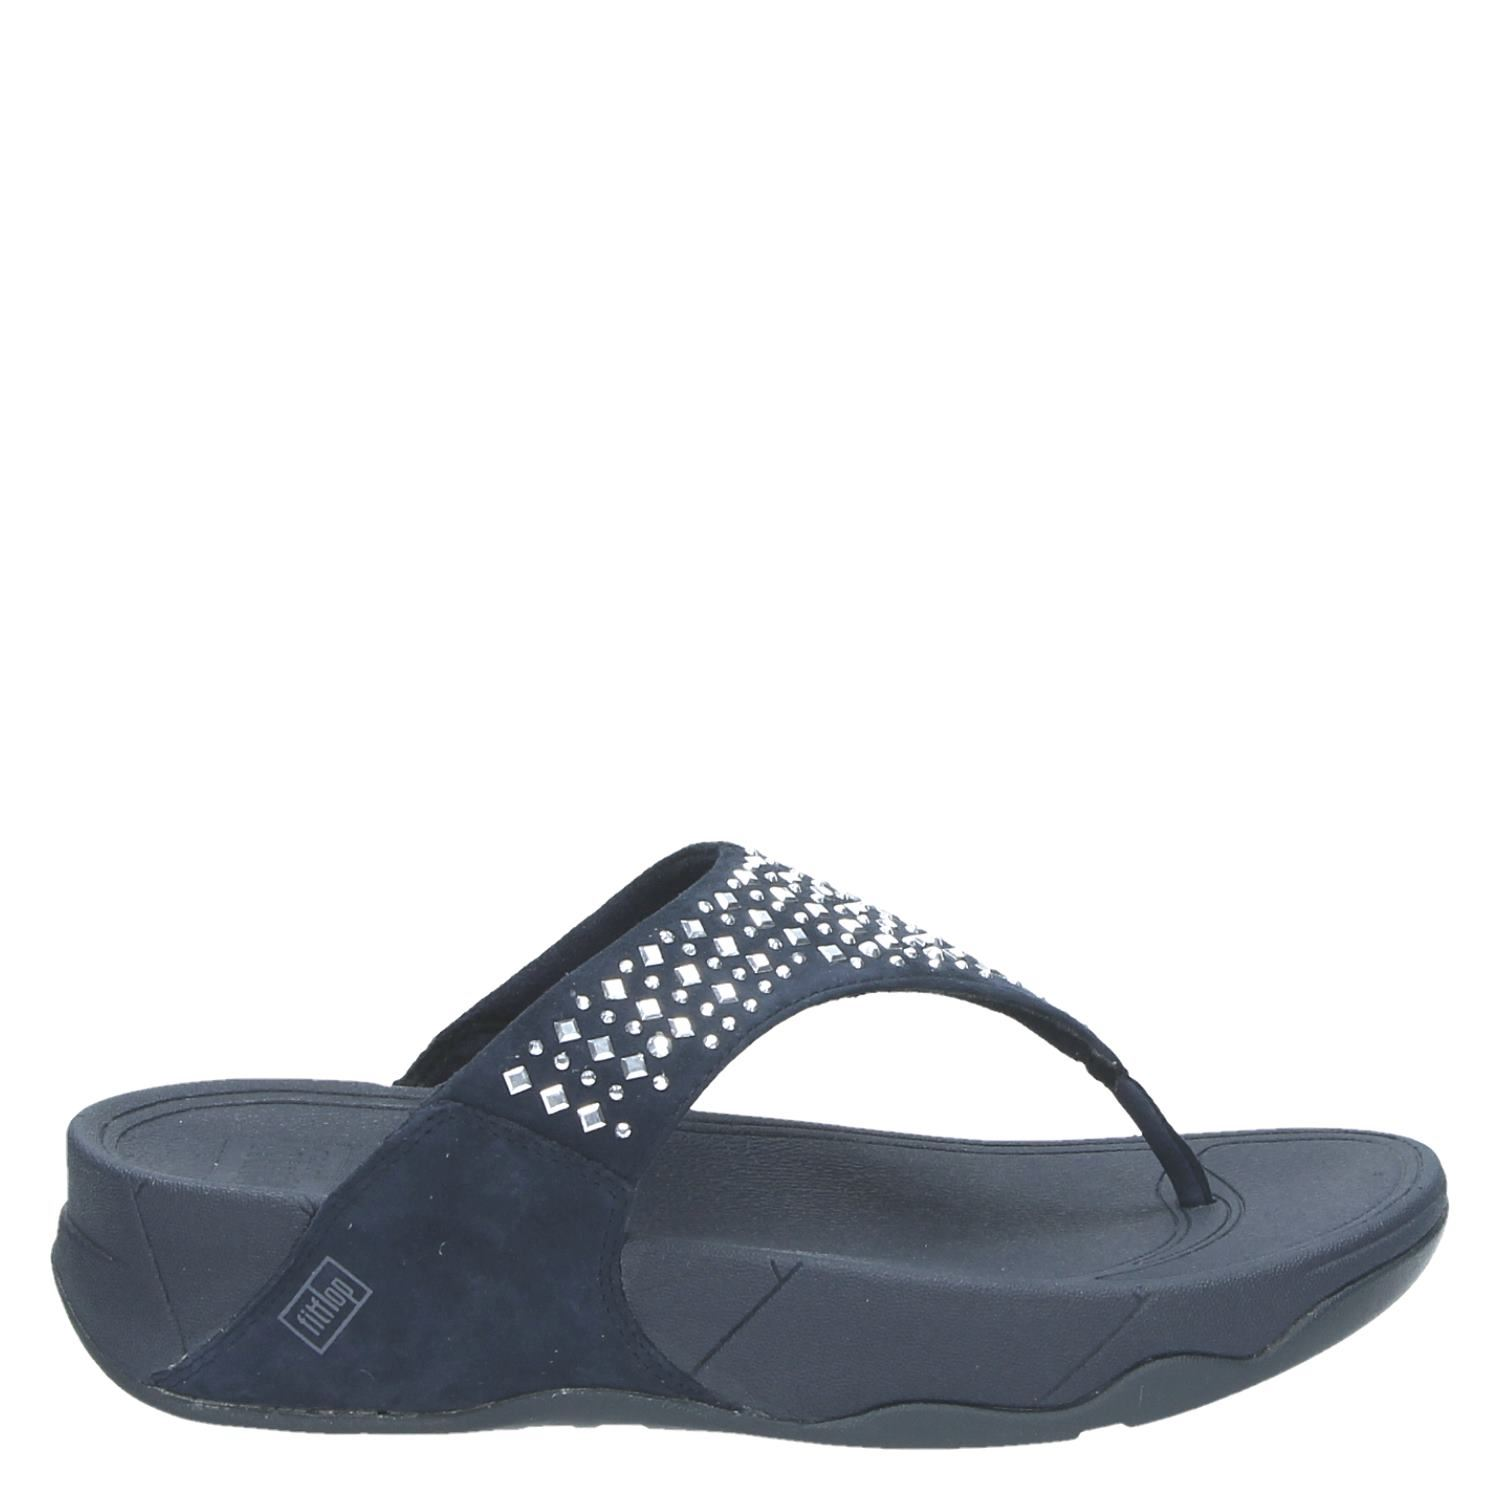 42c1d7cd7d3 Fitflop Slippers Dames